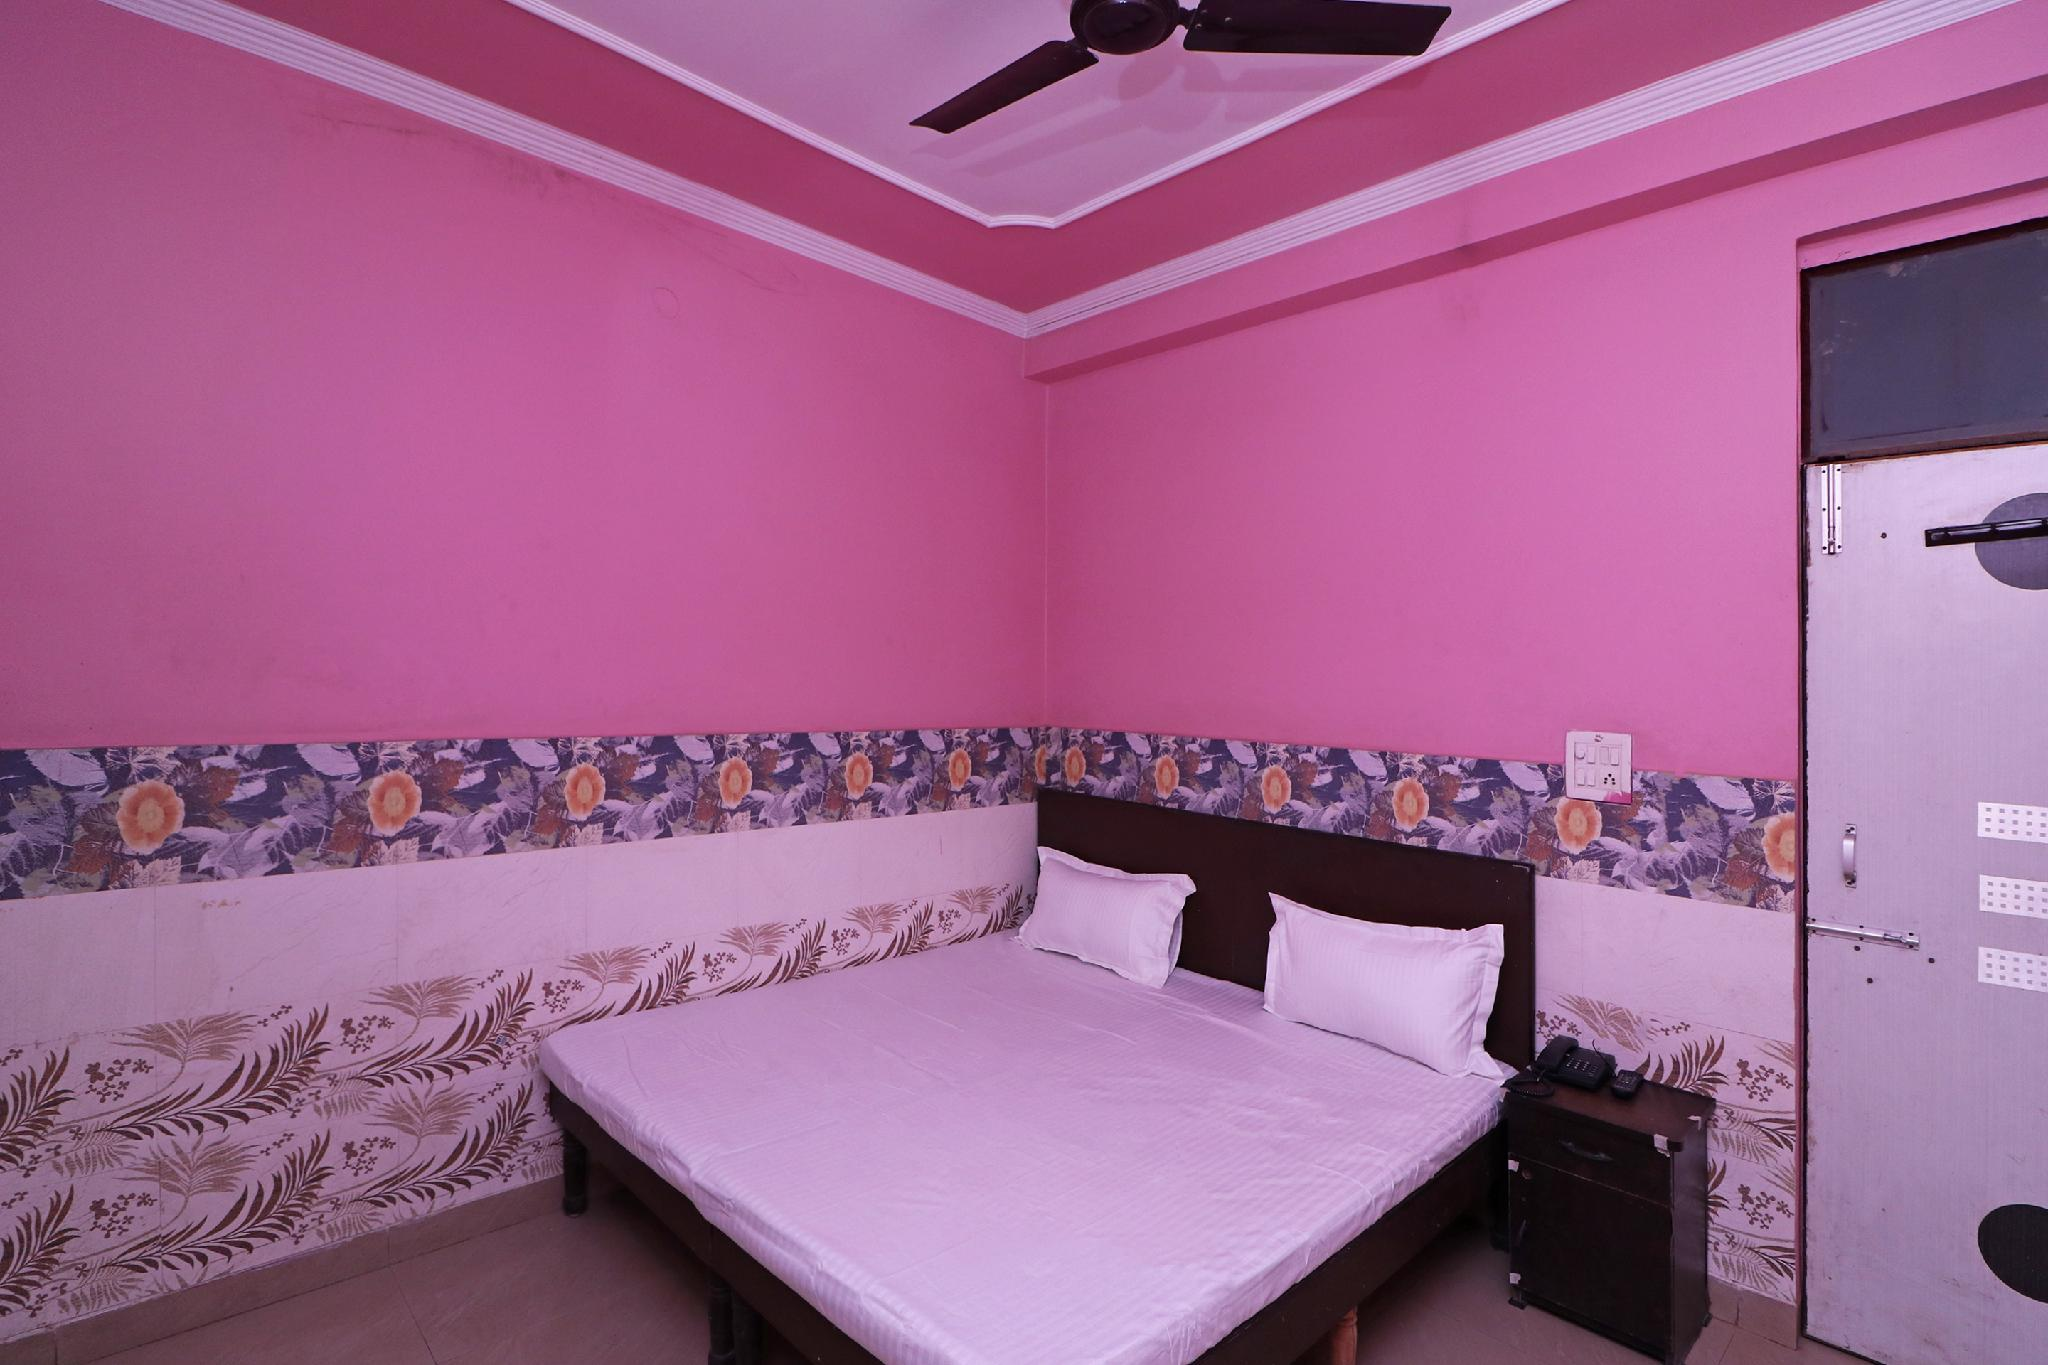 SPOT ON 37255 Paradize Guest House, Faridabad